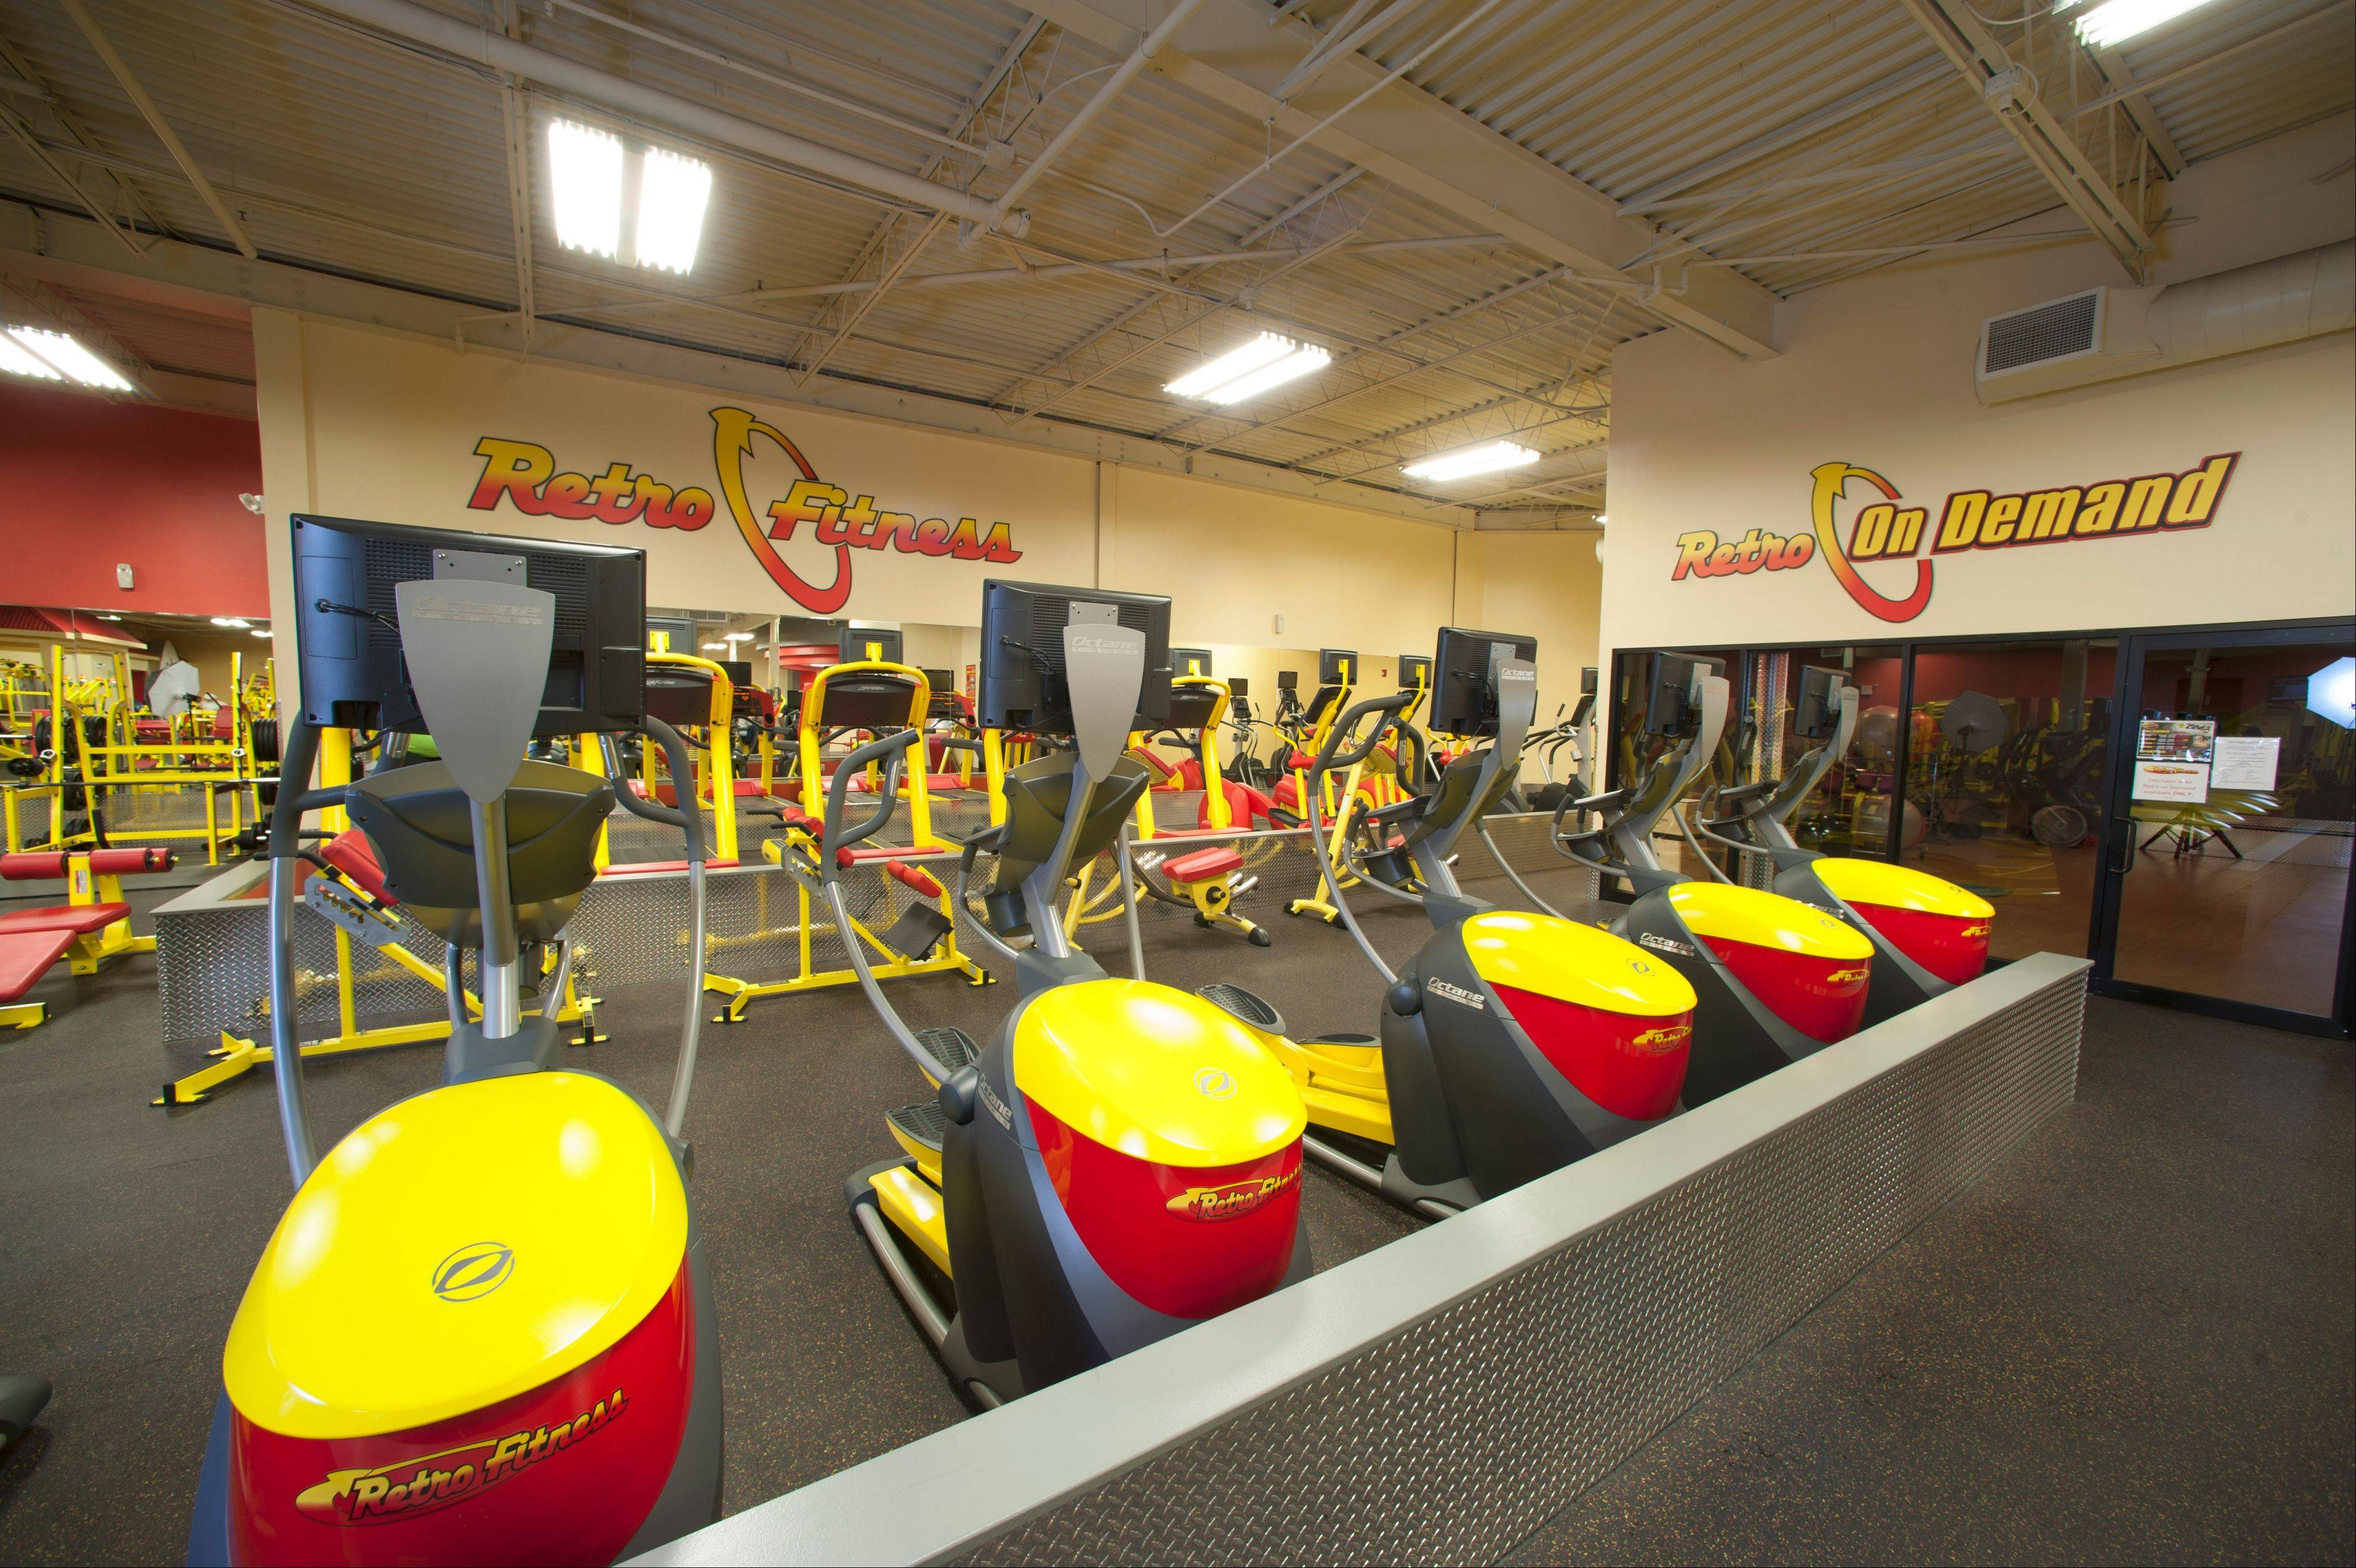 Retro Fitness, a chain of gyms founded in 2006 in the northeast part of the country, is opening its first Illinois location Jan. 15 in Carol Stream.